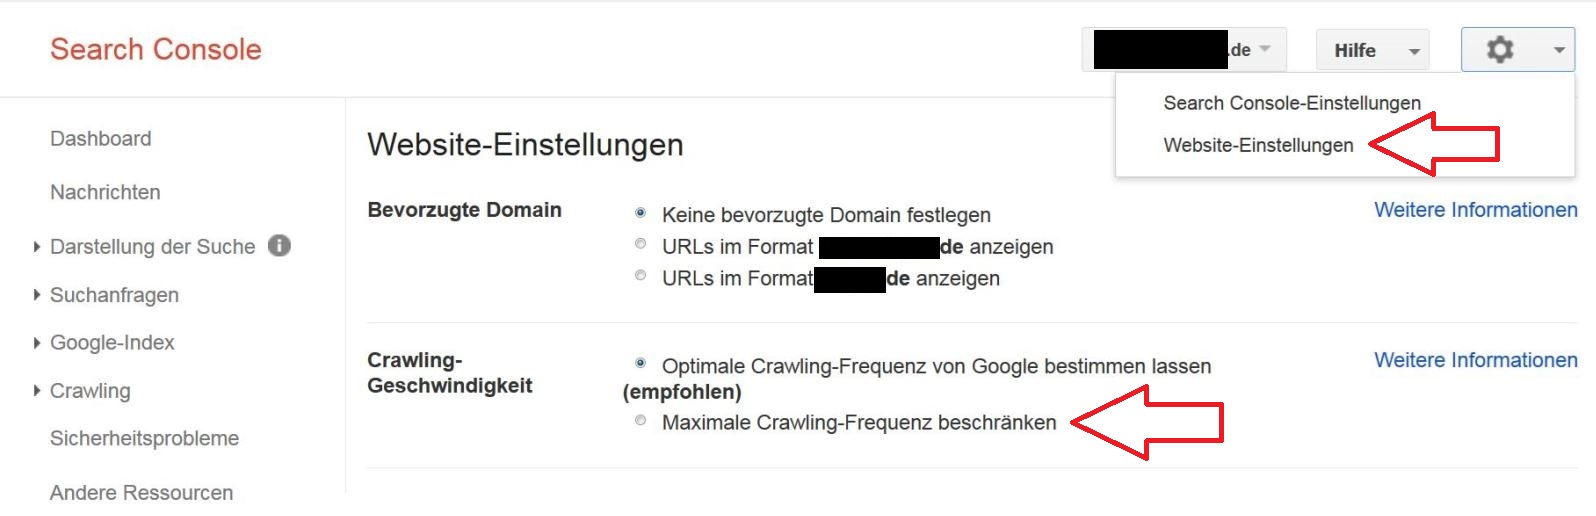 Screenshot Google Search Console: Crawling-Fequenz beschränken